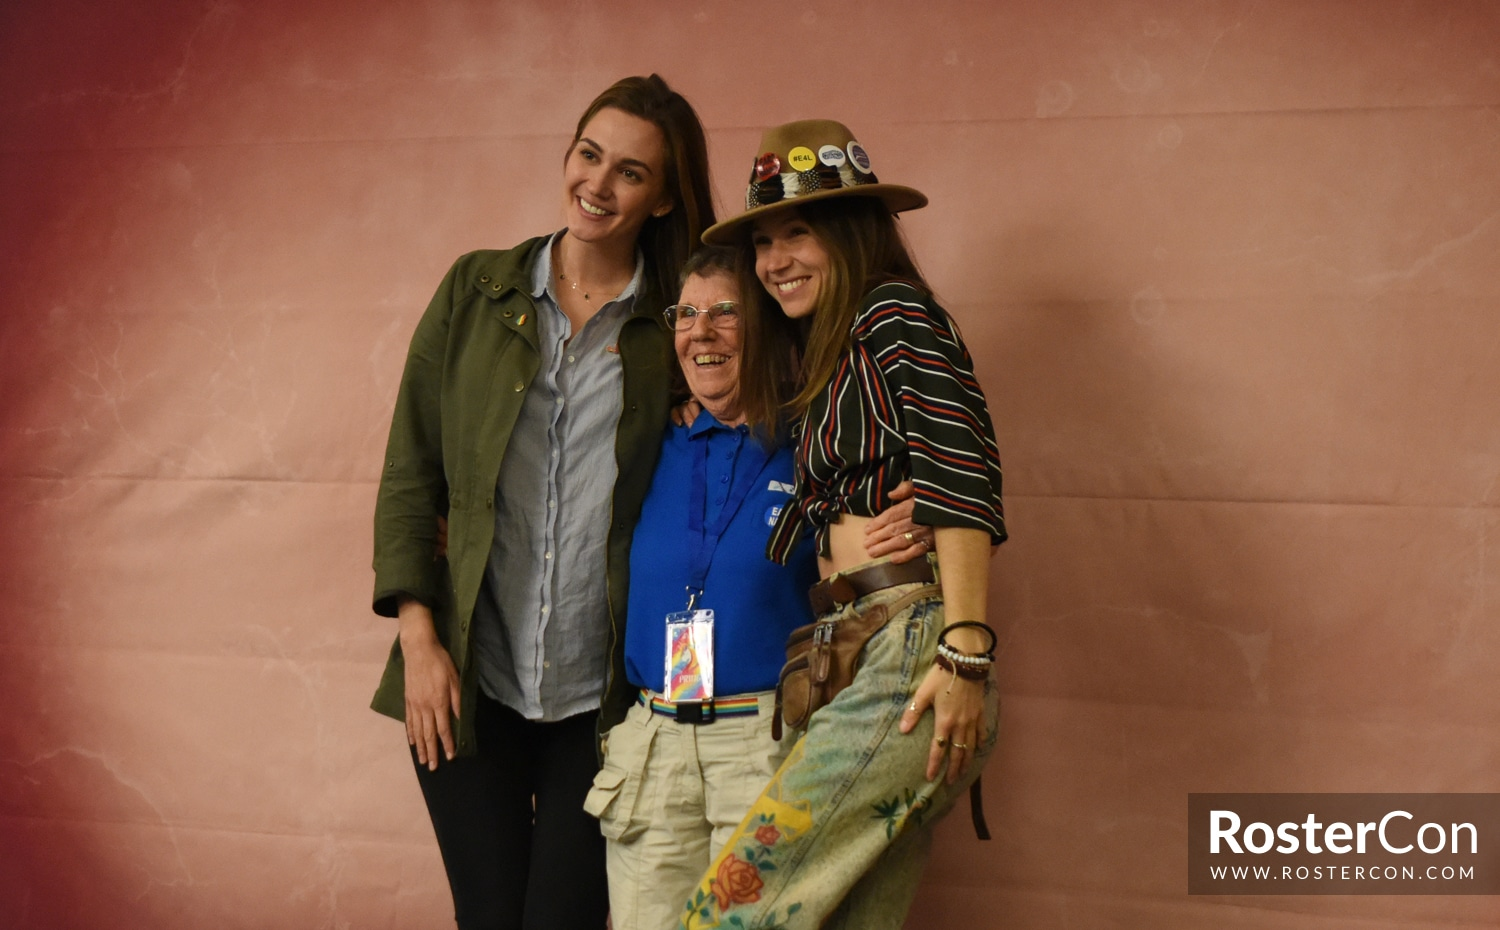 Katherine Barrell & Dominique Provost-Chalkley - Our Stripes Are Beautiful - Wynonna Earp